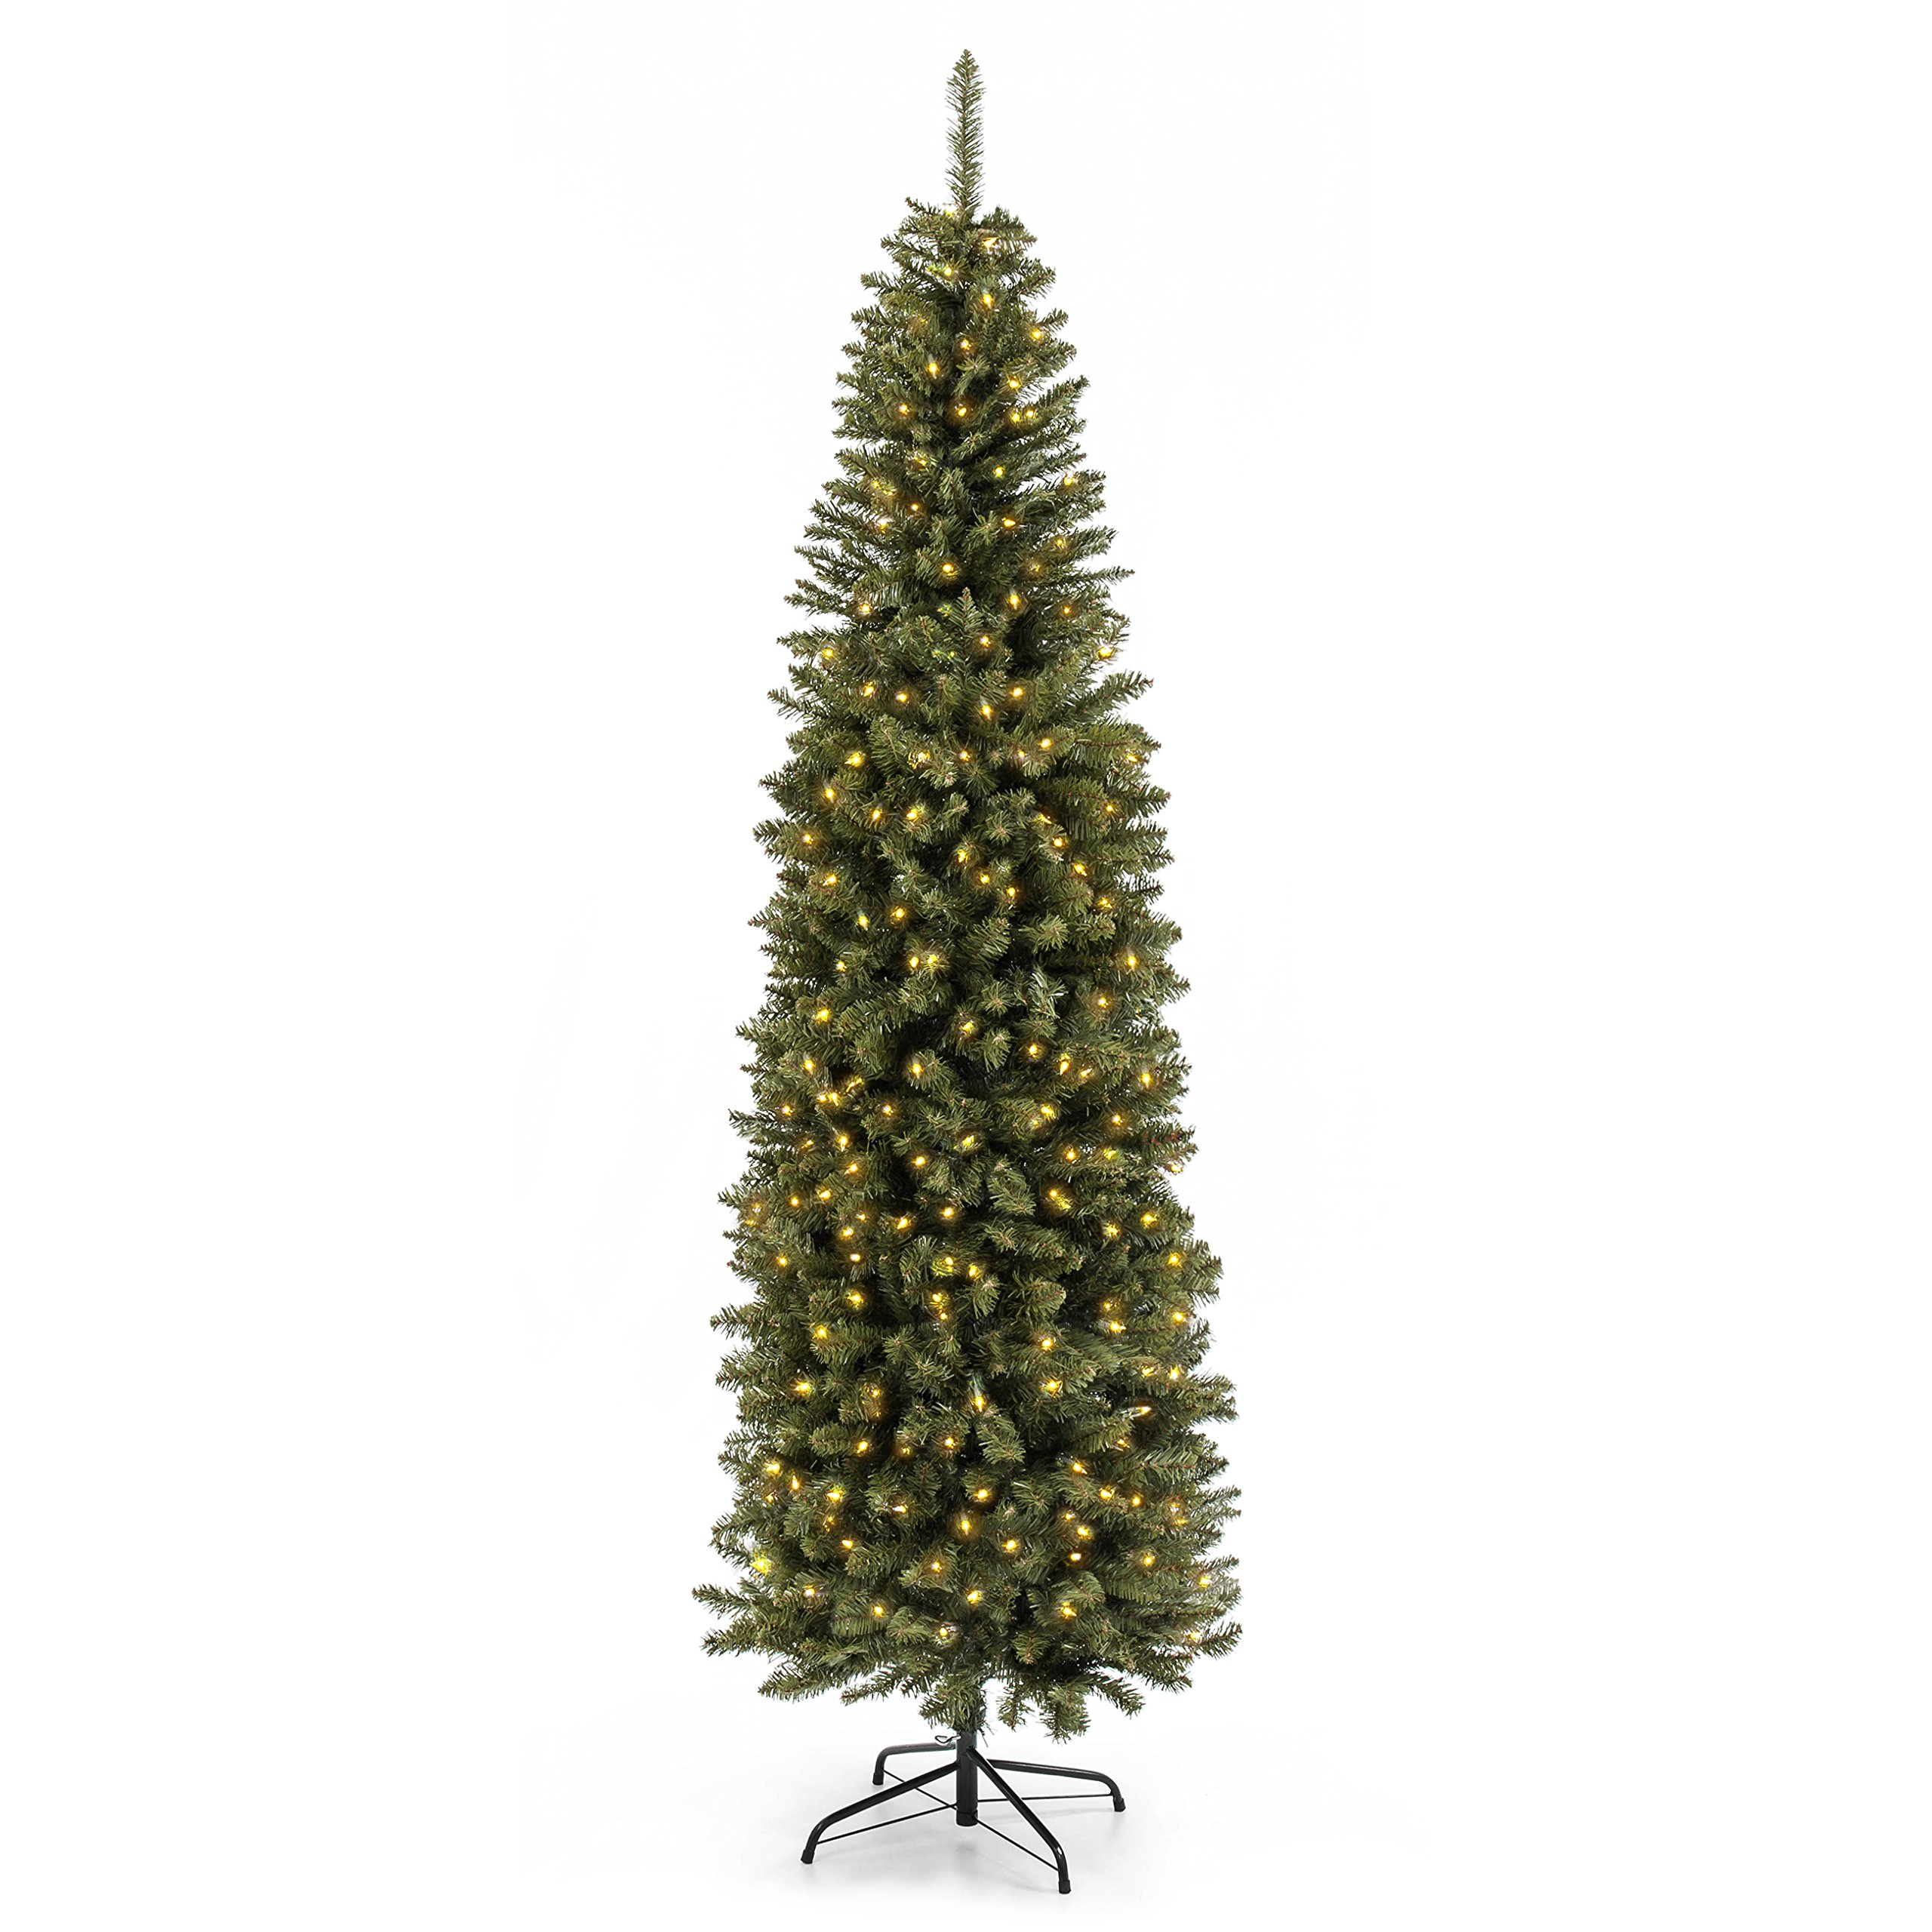 Best Choice Products 7.5FT Pre-Lit Premium Hinged Fir Pencil Christmas Tree w/350 UL 588 Certified Lights, Stand by Best Choice Products